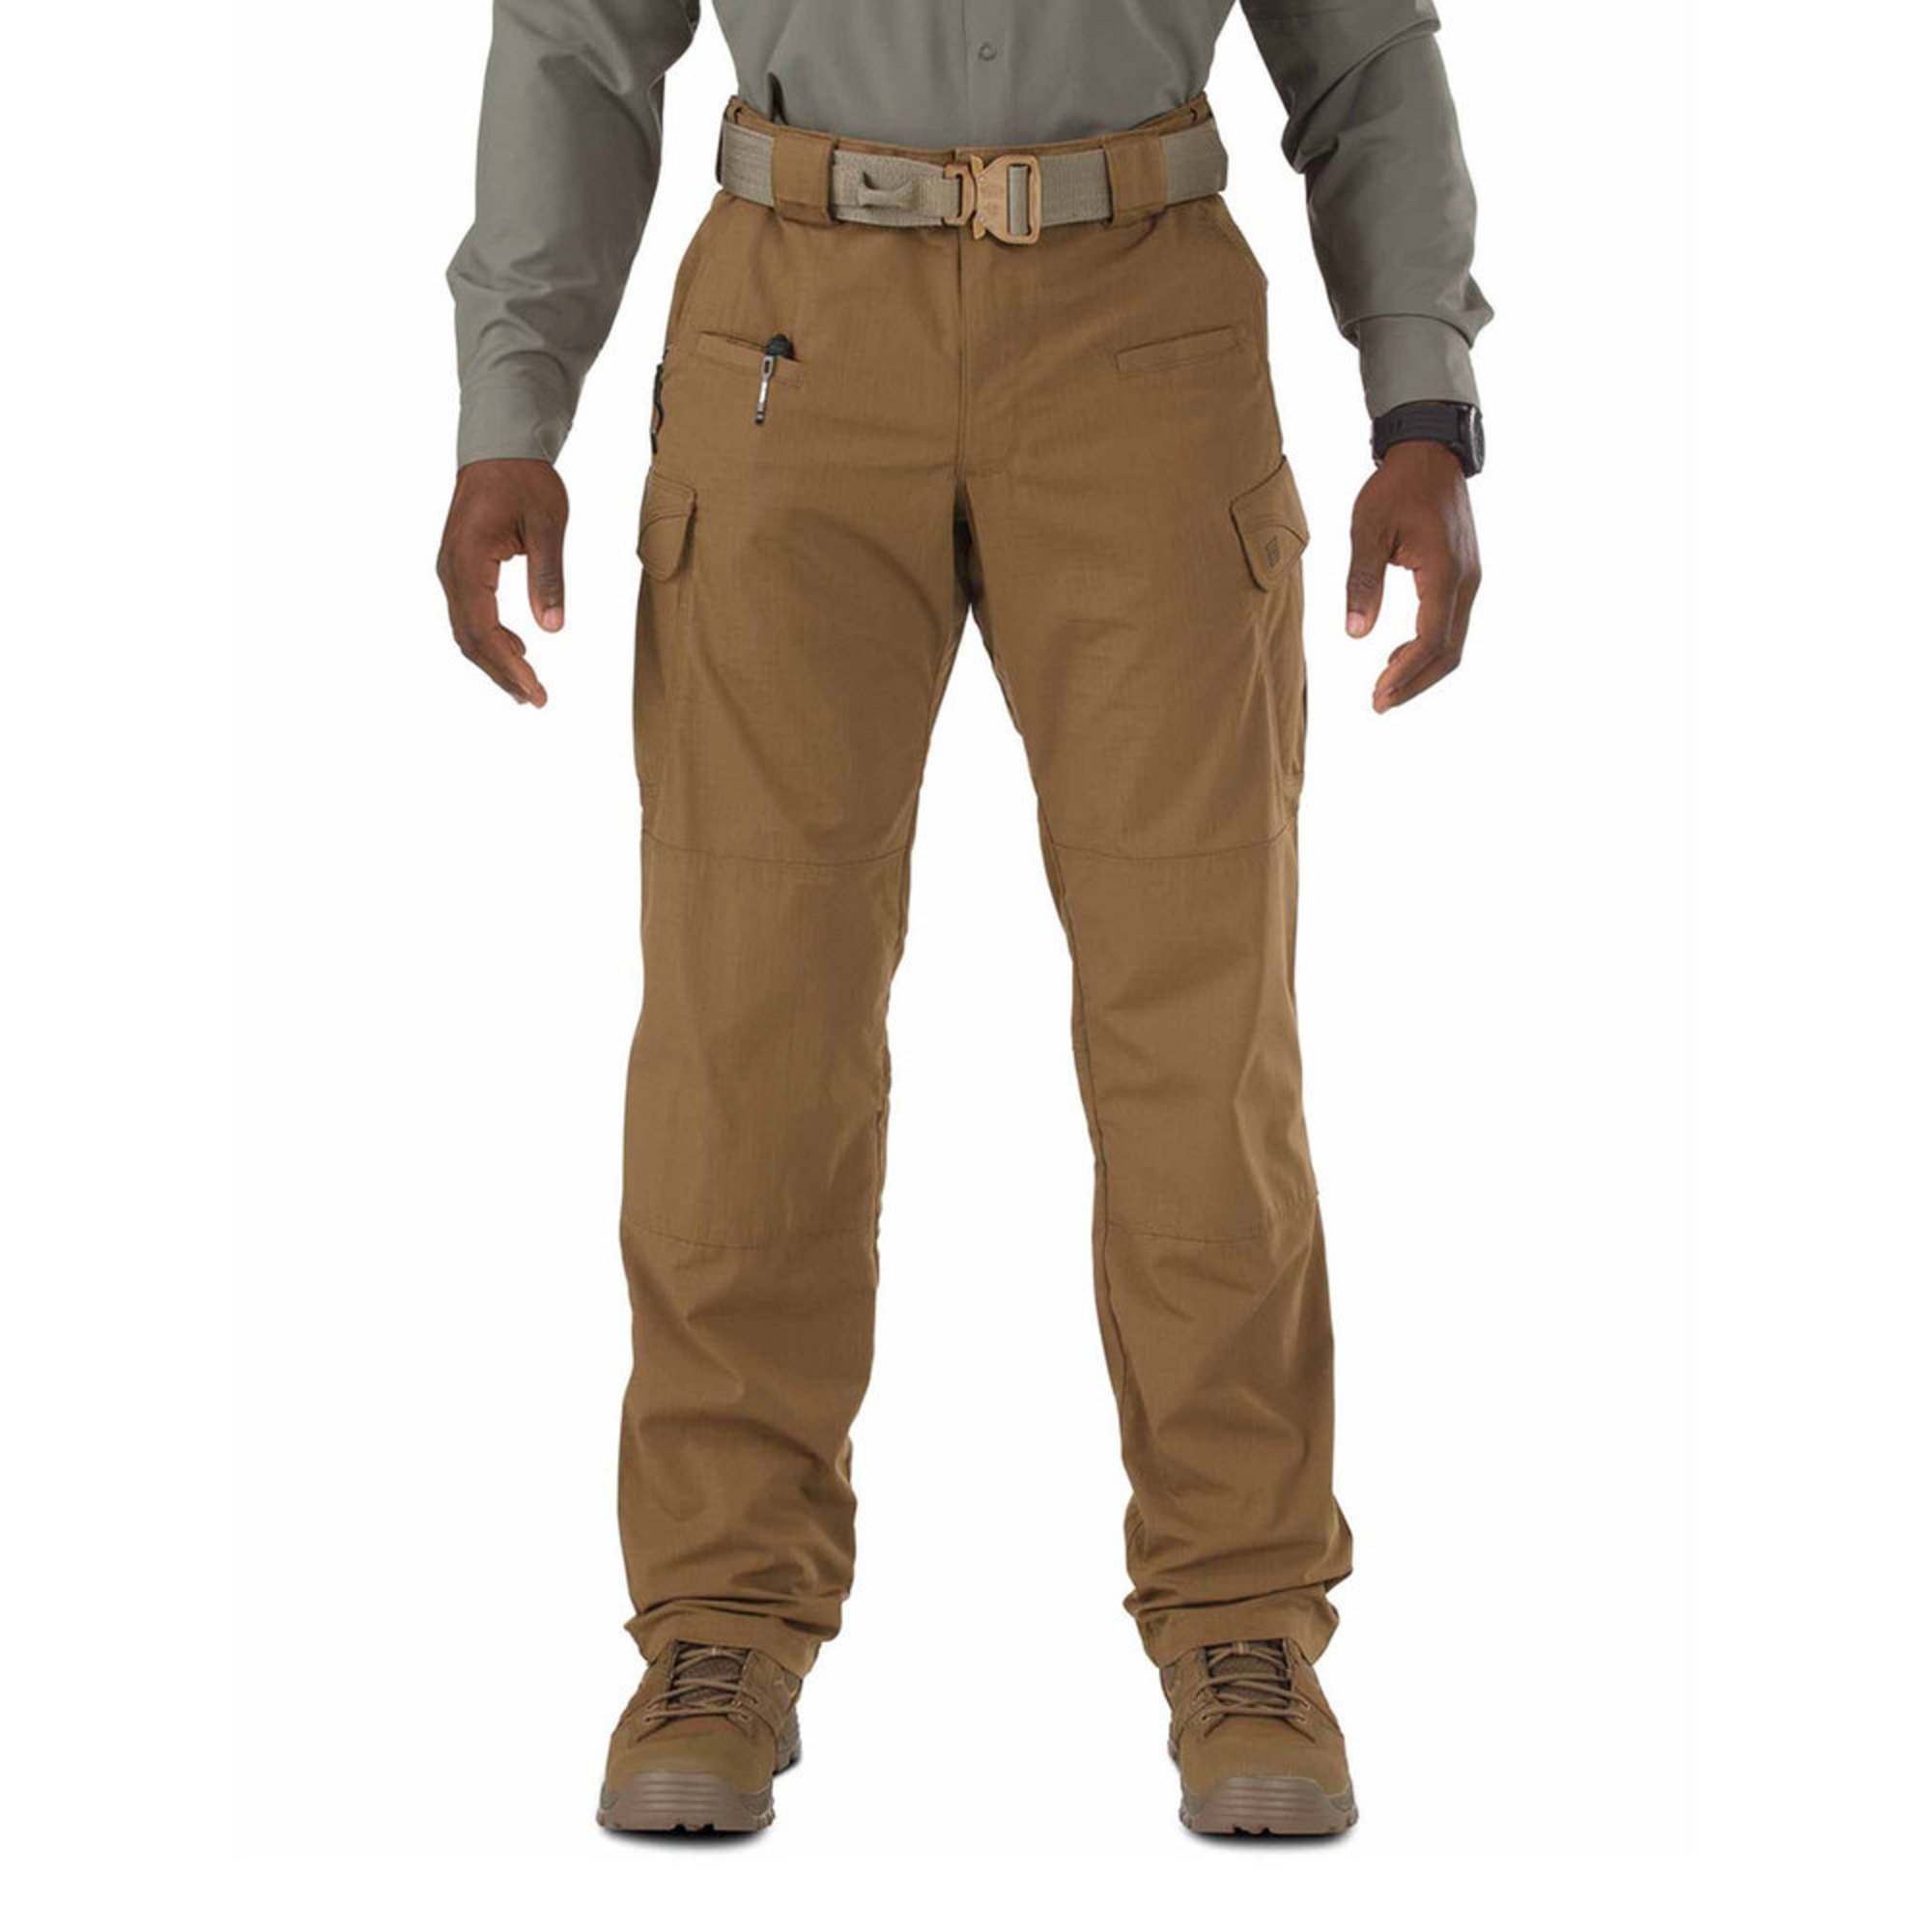 cf422b4e497b 5.11 Tactical Men s Stryke Pants